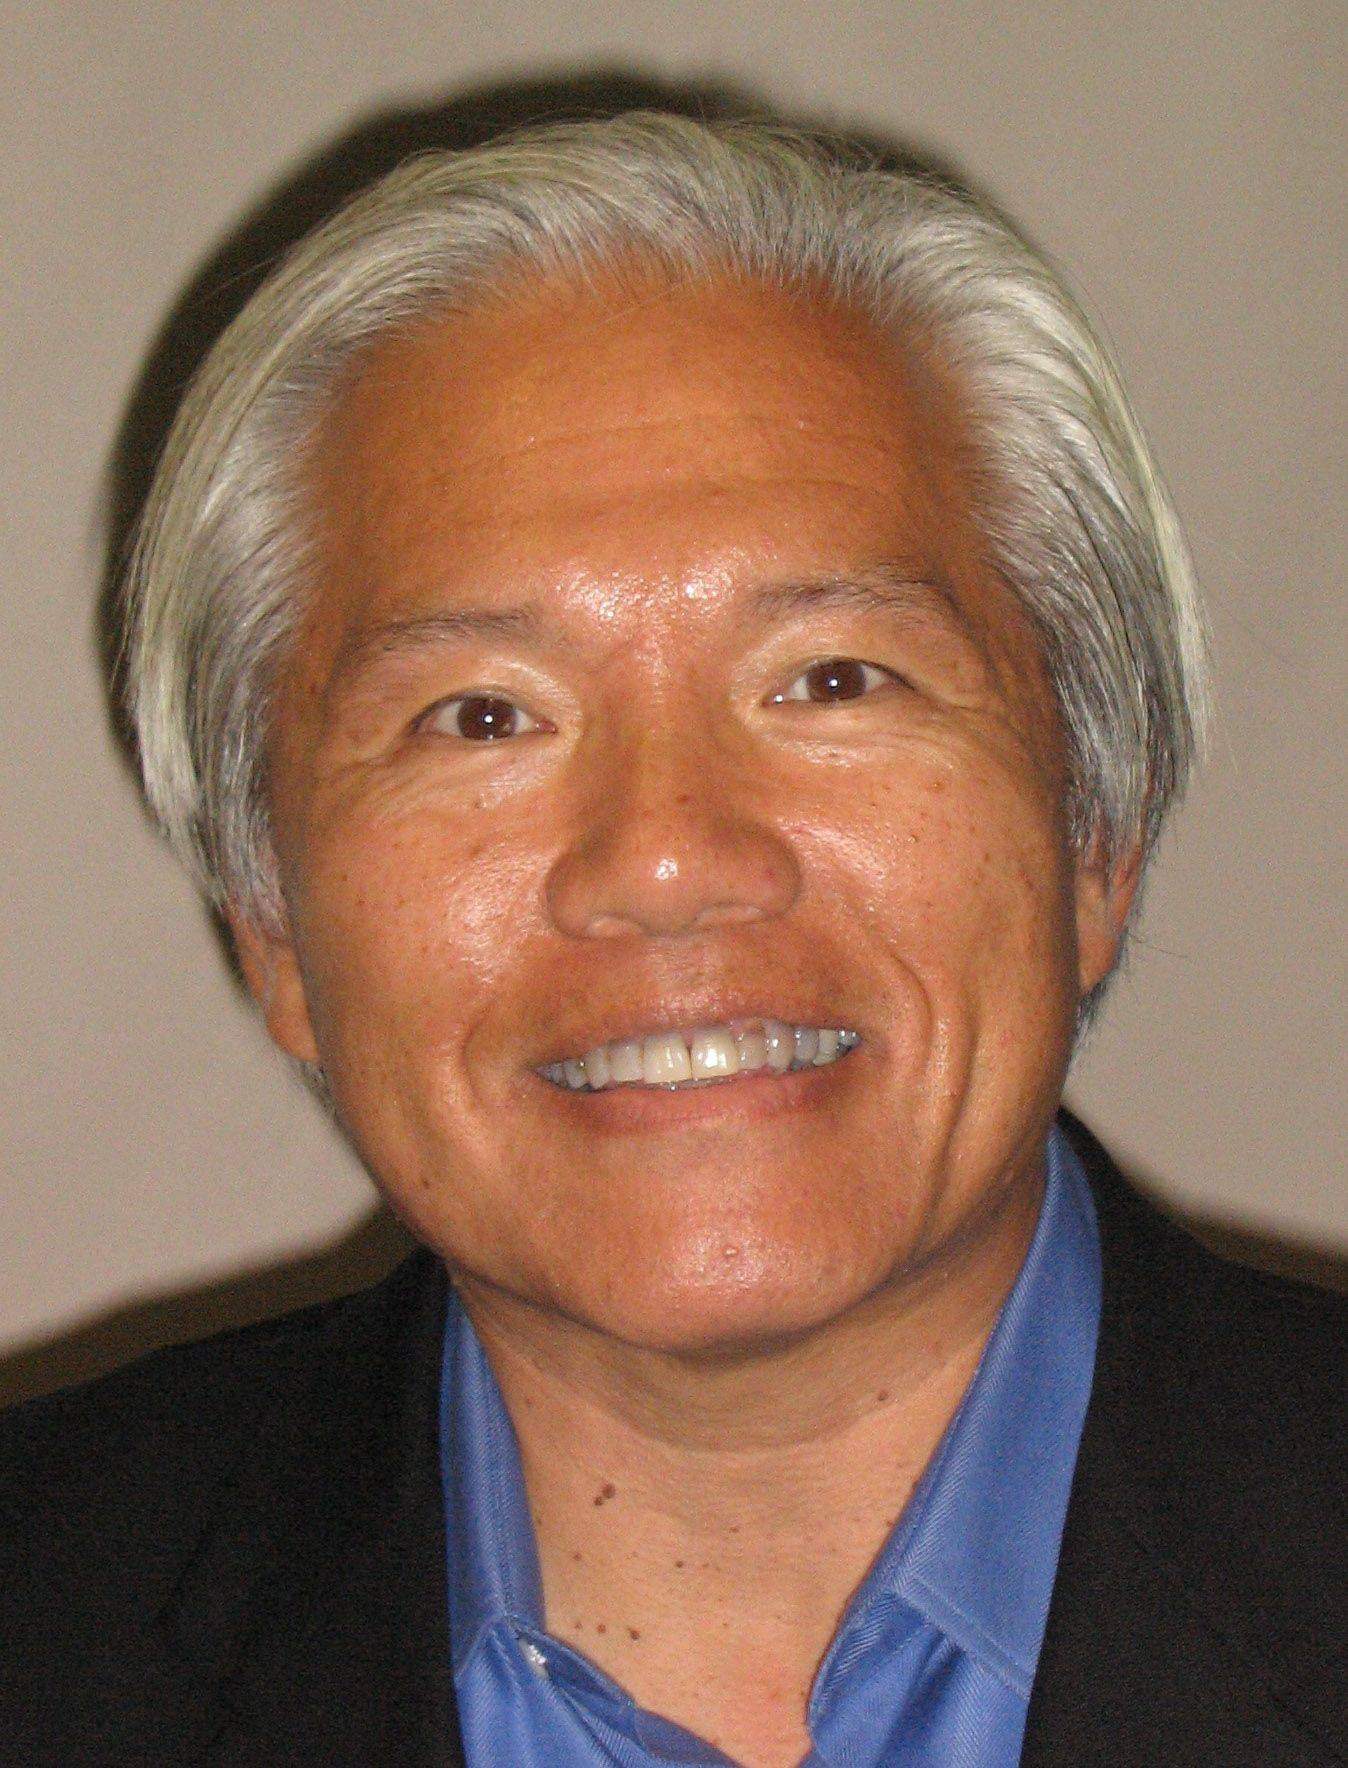 Former McHenry County Board member Perry Moy was one of the few elected officials with an Asian heritage.